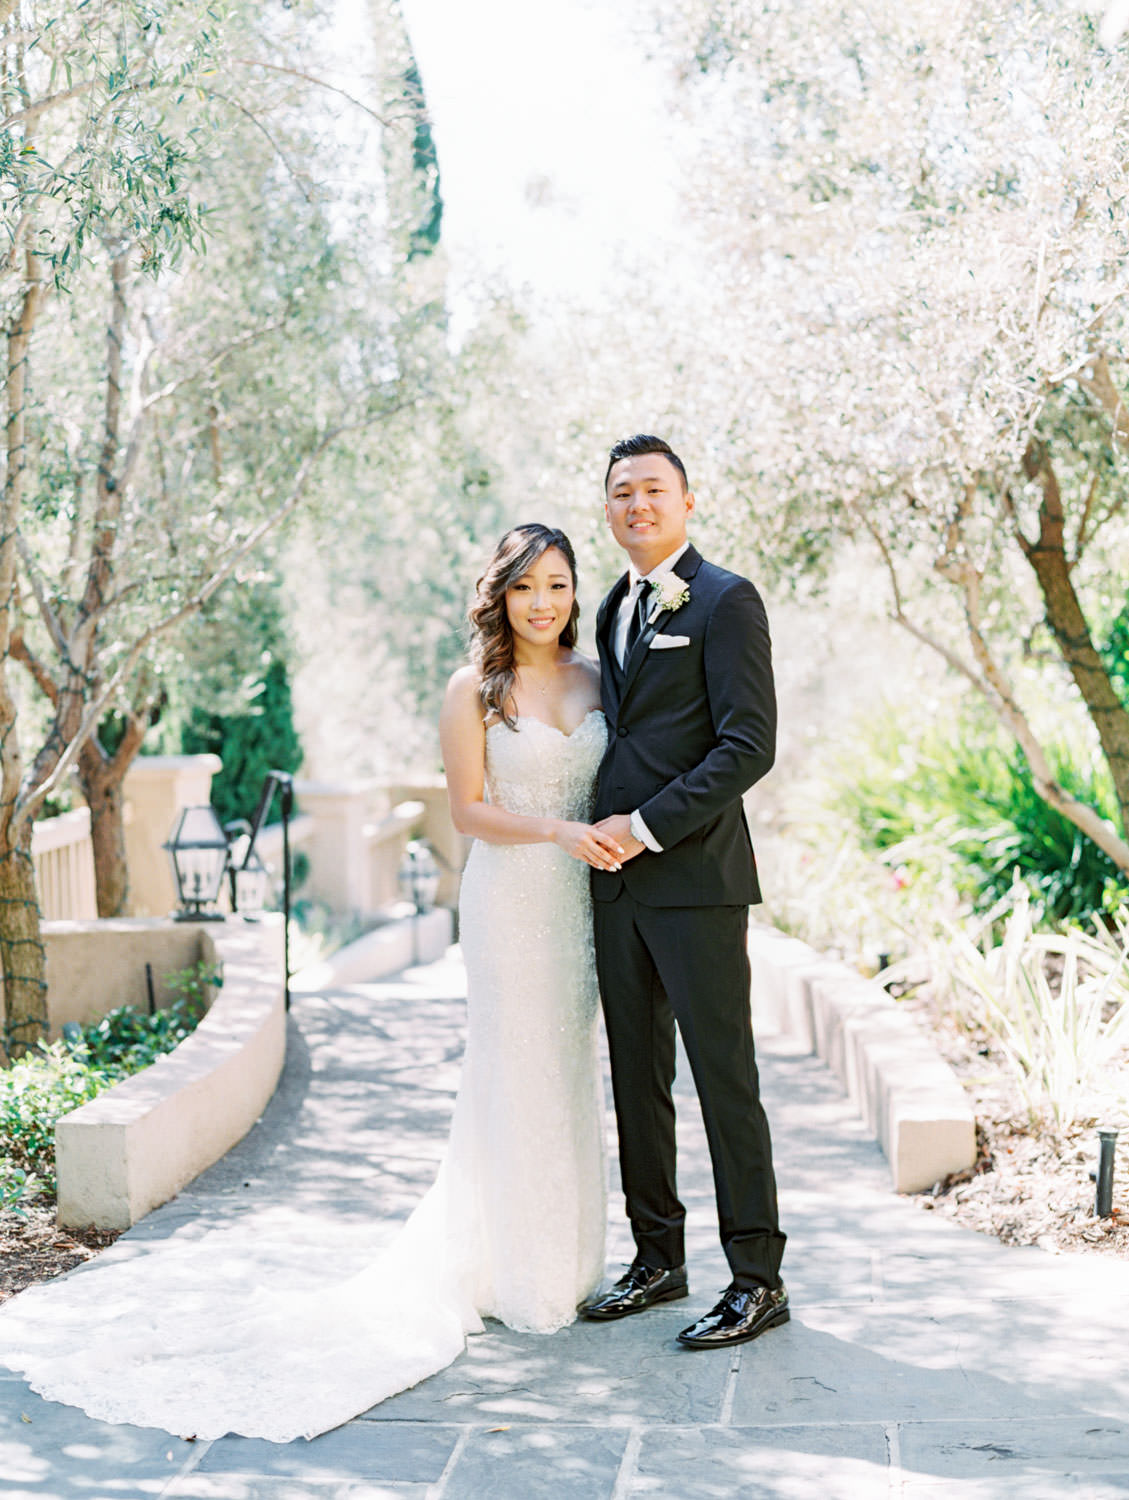 Bride and groom portrait in front of foliage. Groom in a three piece black tuxedo and bride in a Martina Liana gown. Wedding at Rancho Bernardo Inn. Film photo by Cavin Elizabeth Photography